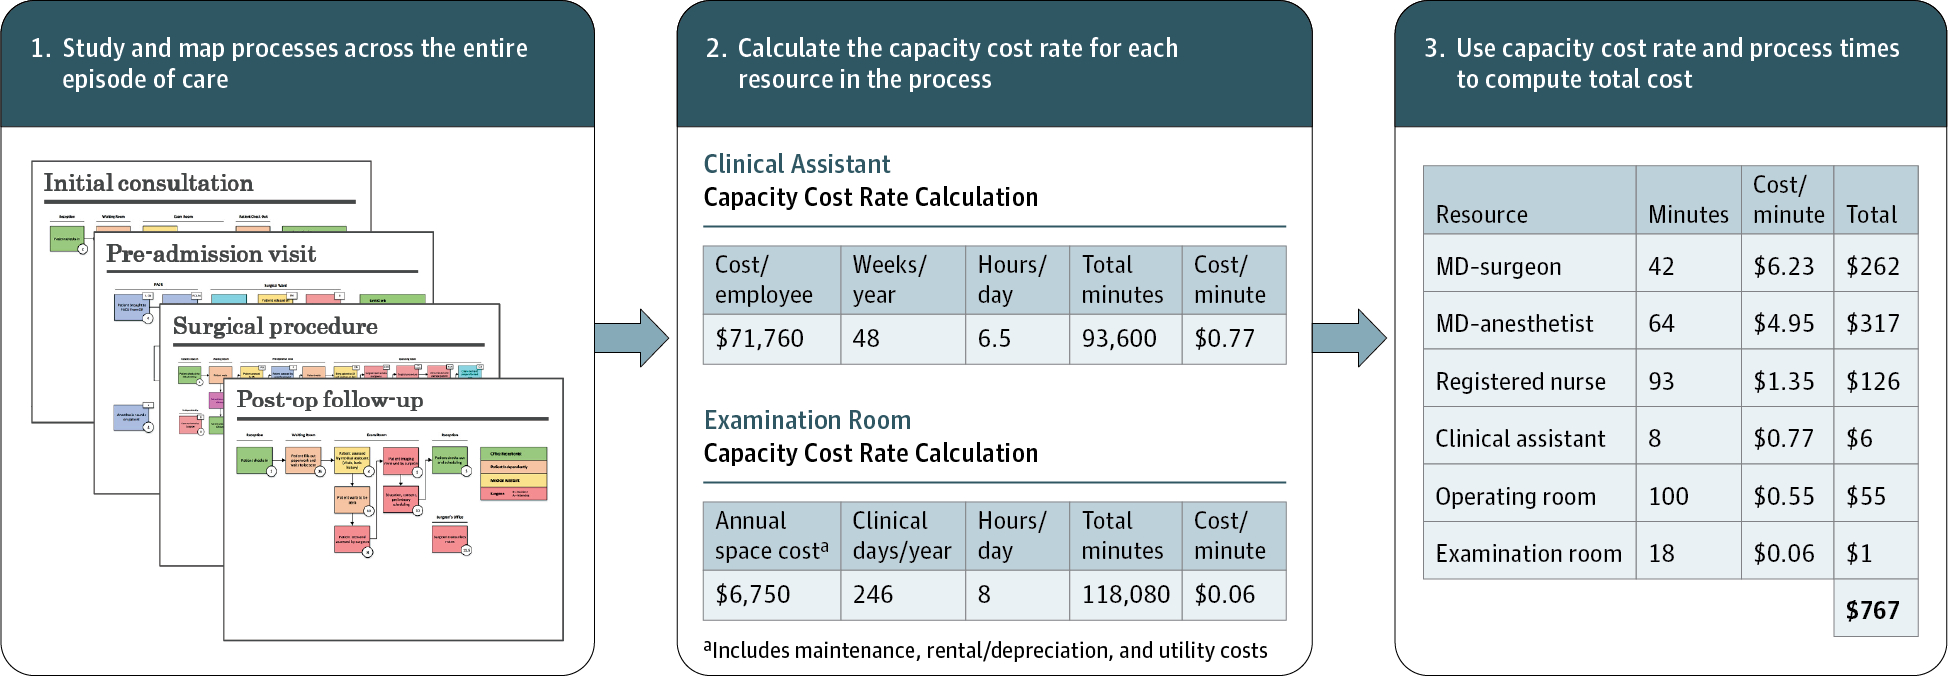 Activity Based Costing Spreadsheet For Timedriven Activitybased Costing For Surgical Episodes.  Surgery